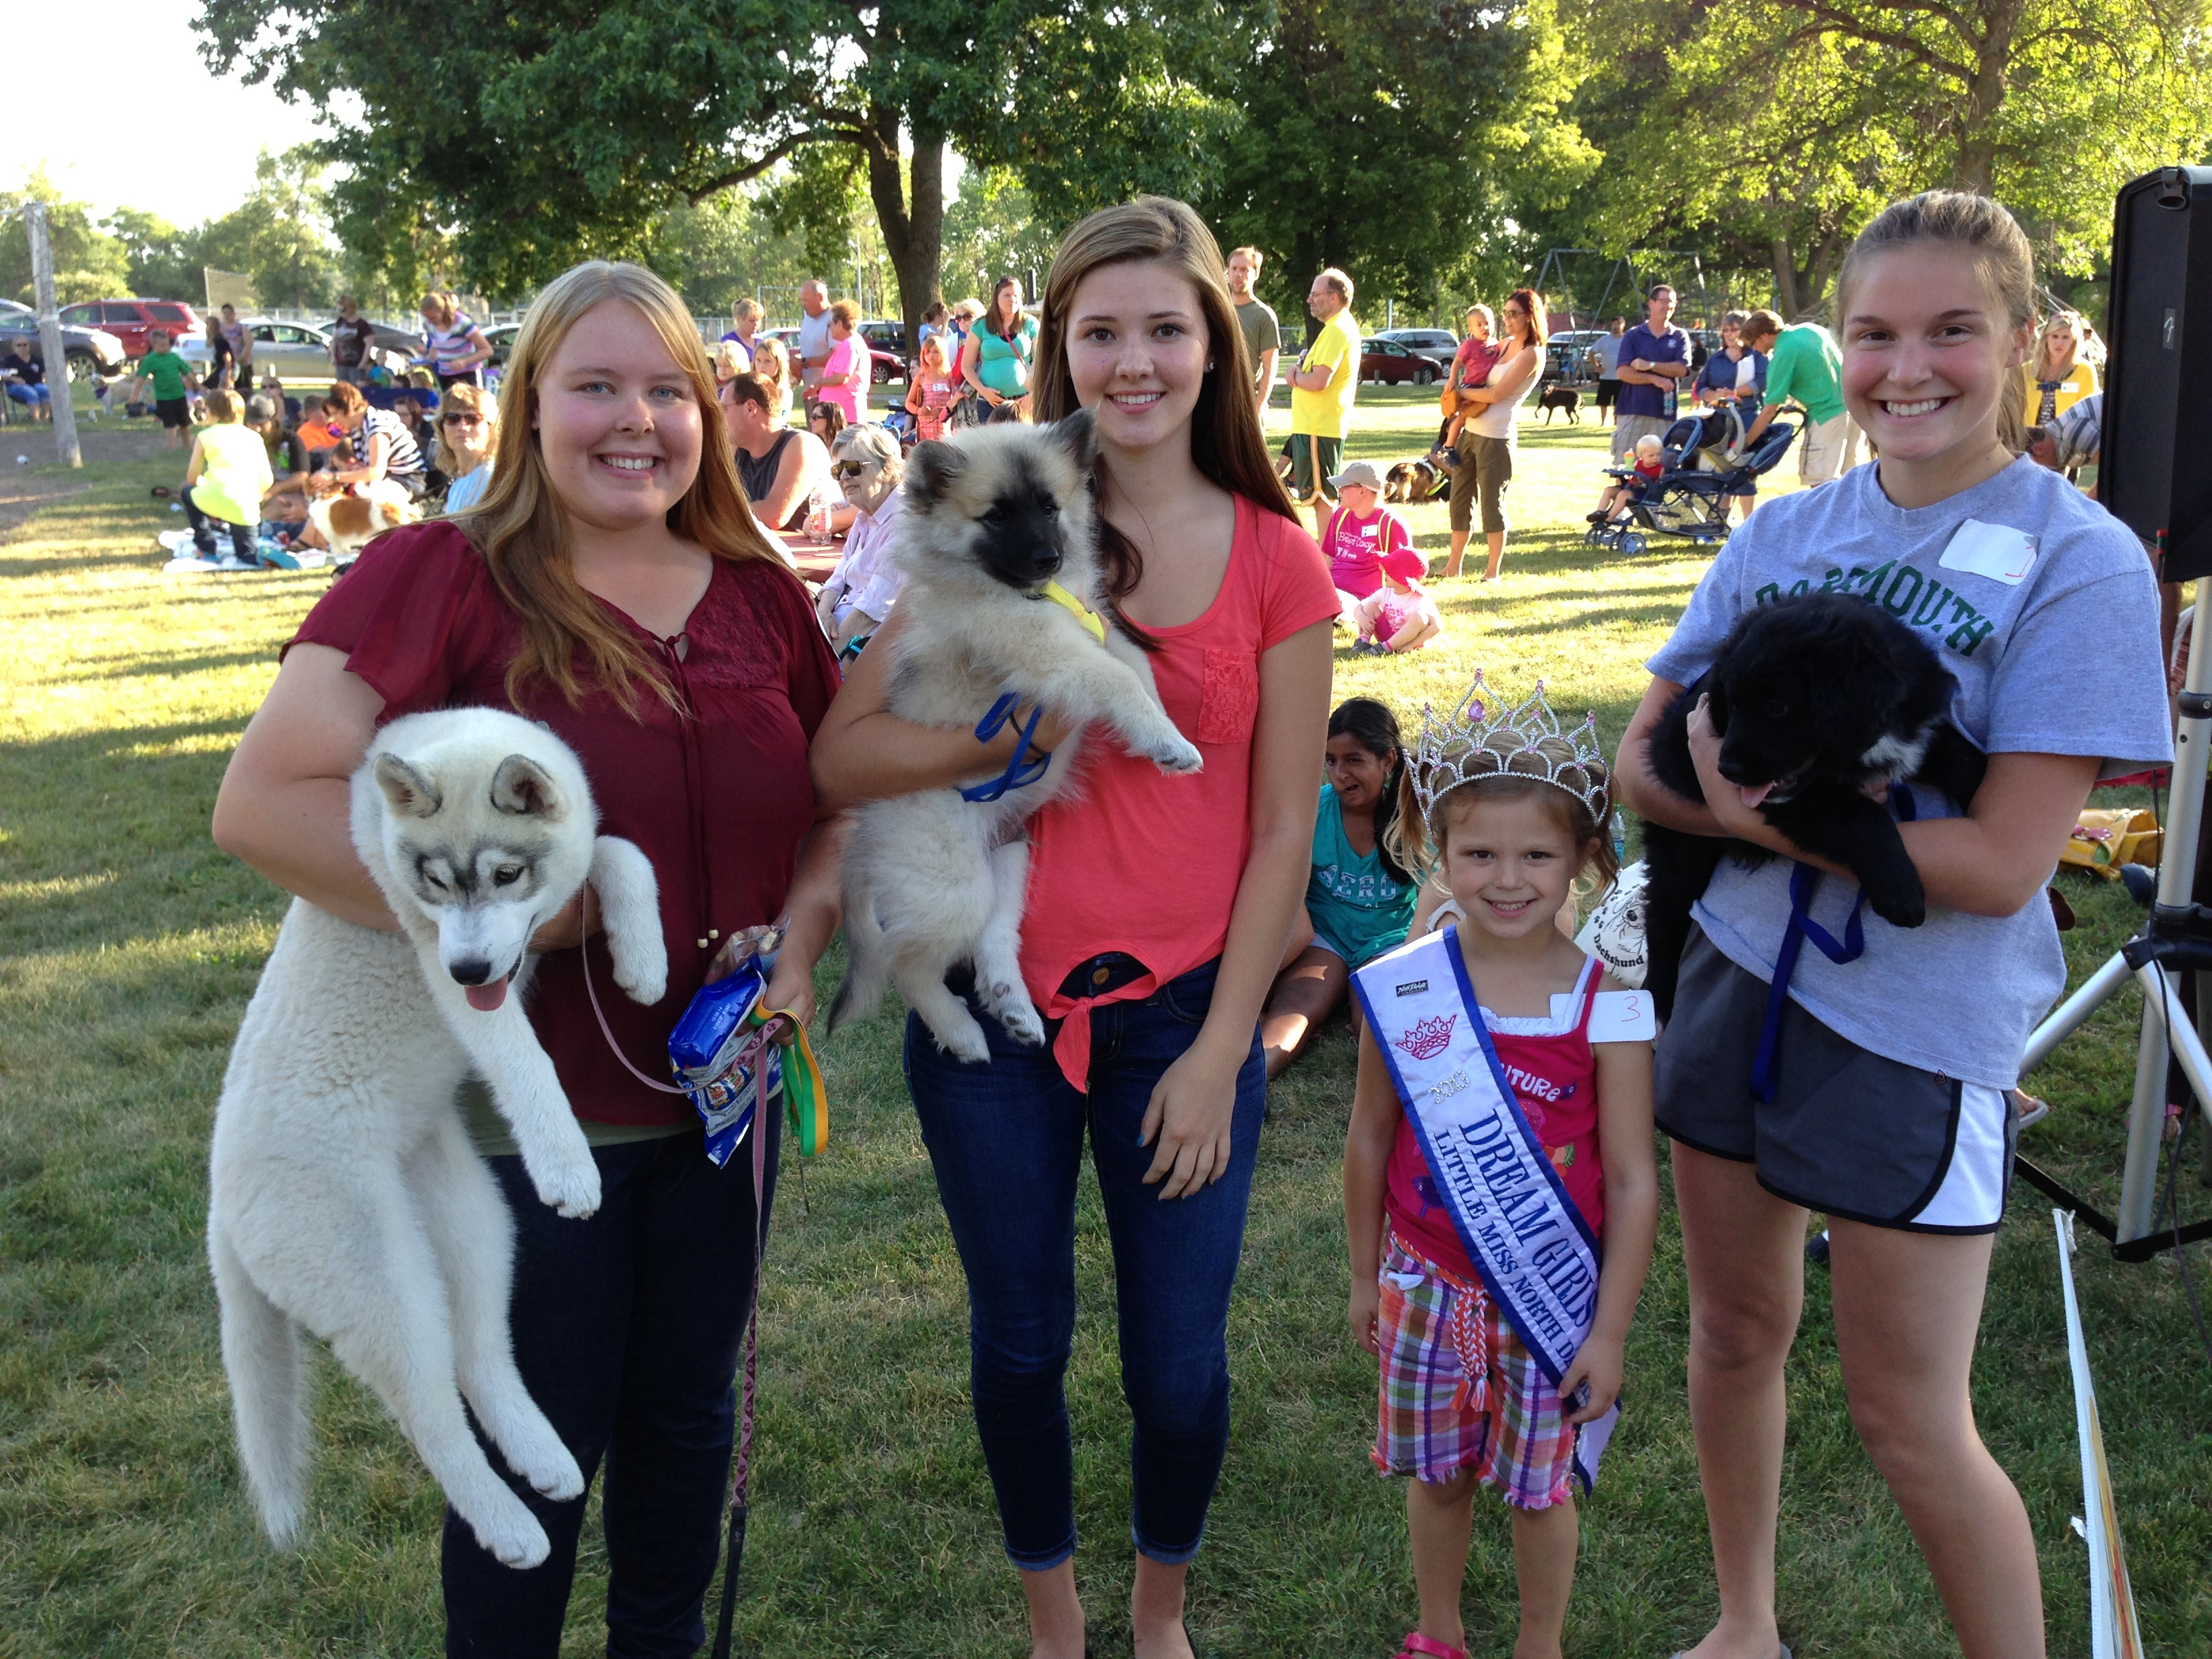 Cuteness Overload at Local Family-Friendly Dog Show